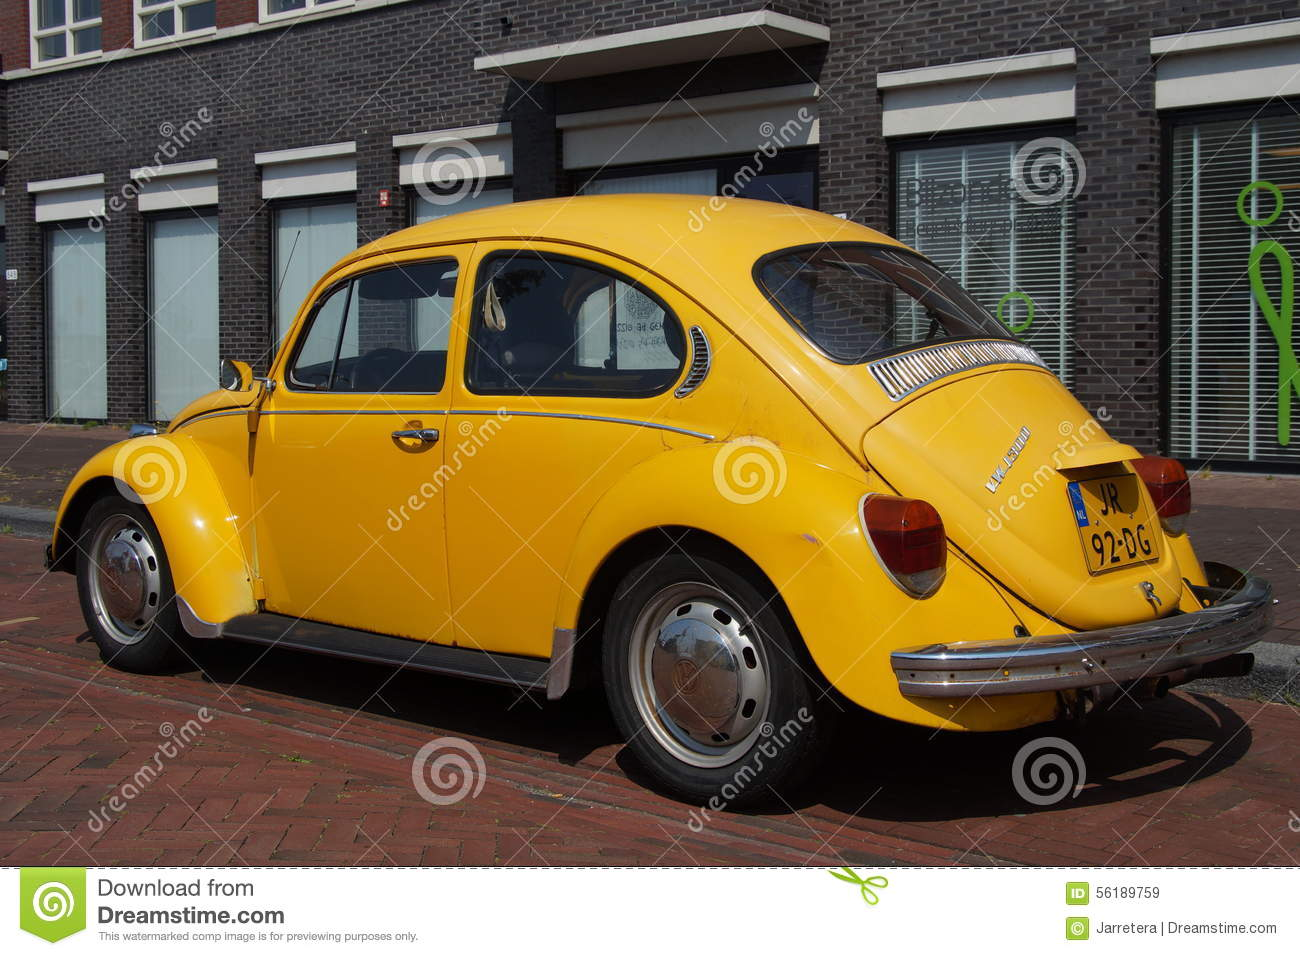 yellow volkswagen kafer classic vw beetle editorial stock image image 56189759. Black Bedroom Furniture Sets. Home Design Ideas